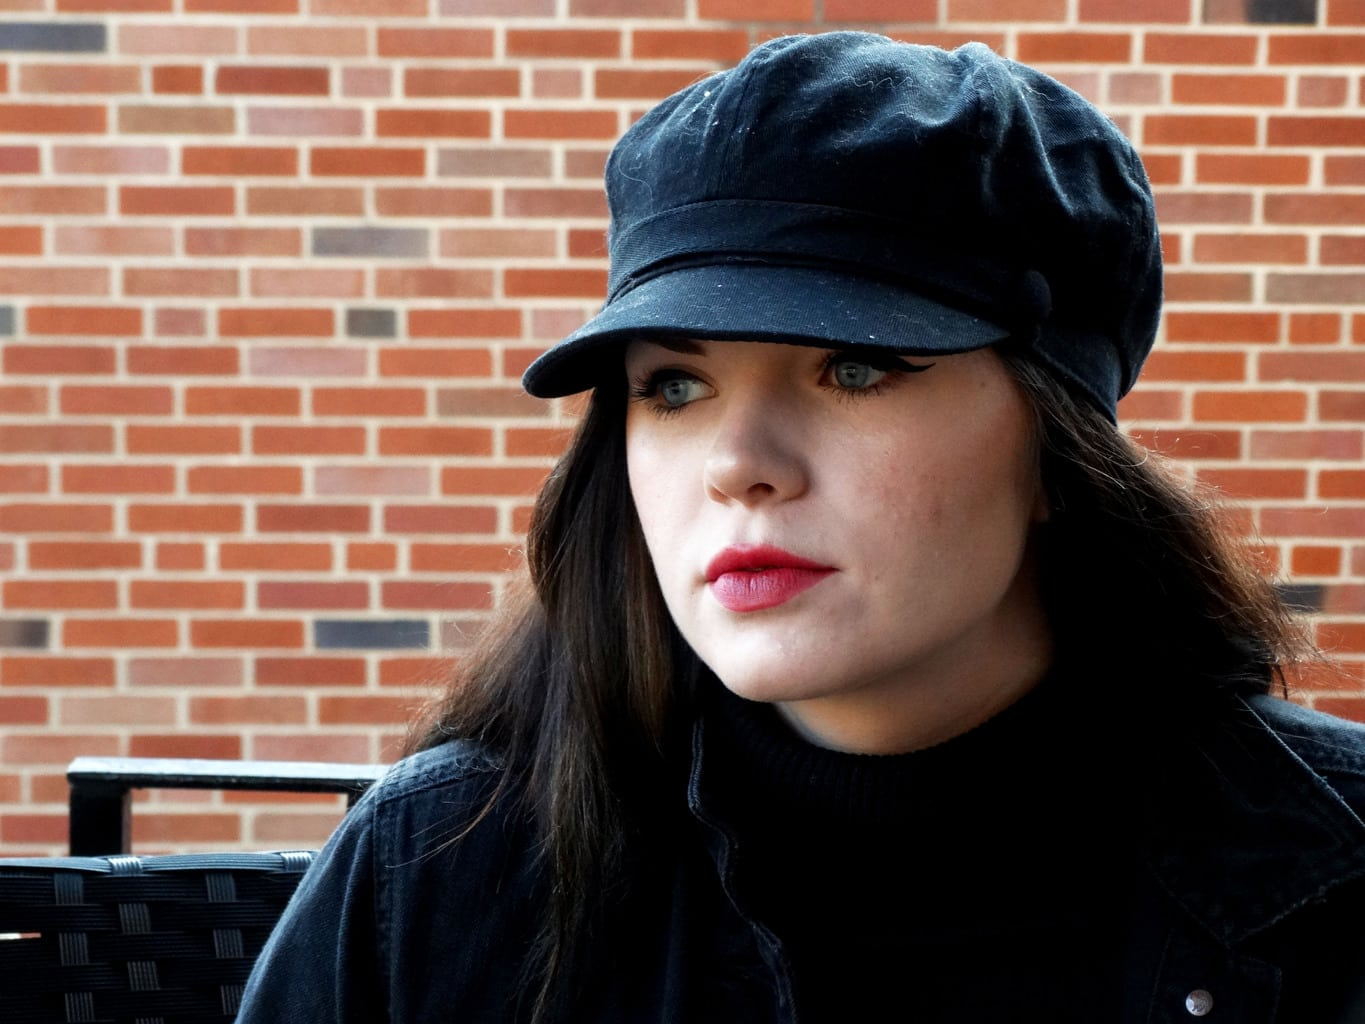 Mackenzie wears a black cabby hat with dramatic cat eyeliner and a bold pink lip.